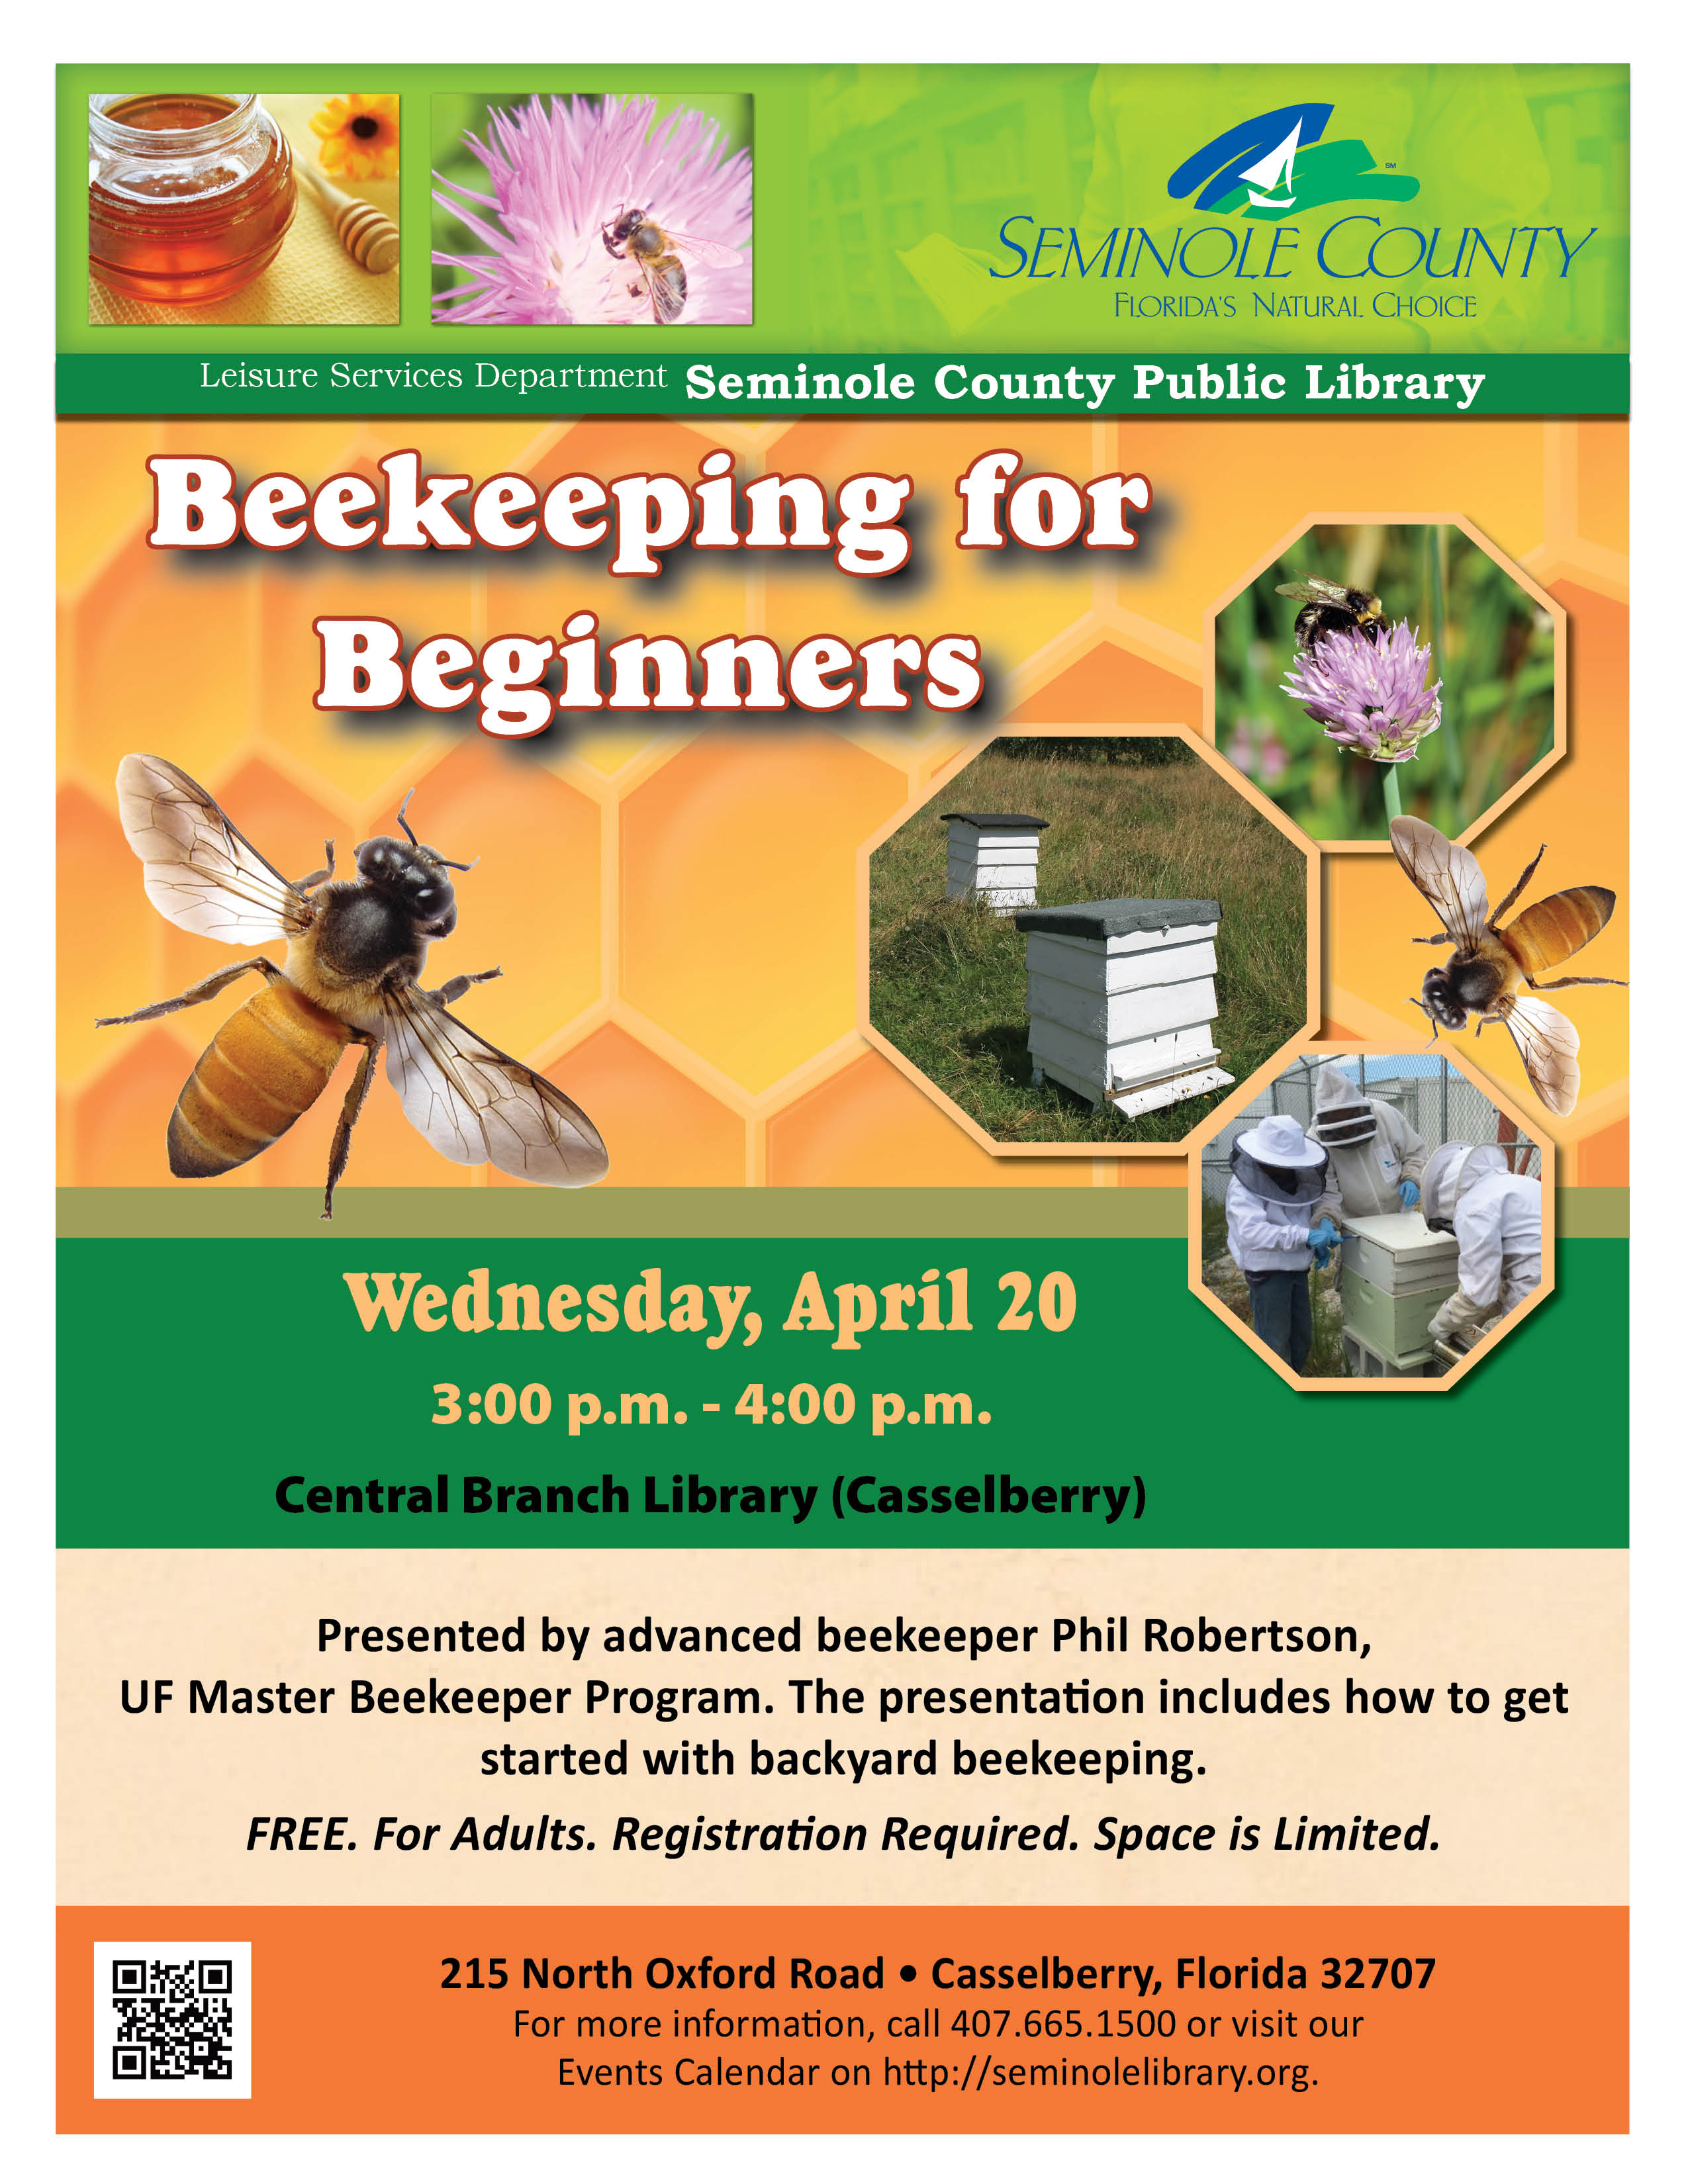 Beekeeping for beginners central branch library casselberry seminole county - Beekeeping beginners small business ...